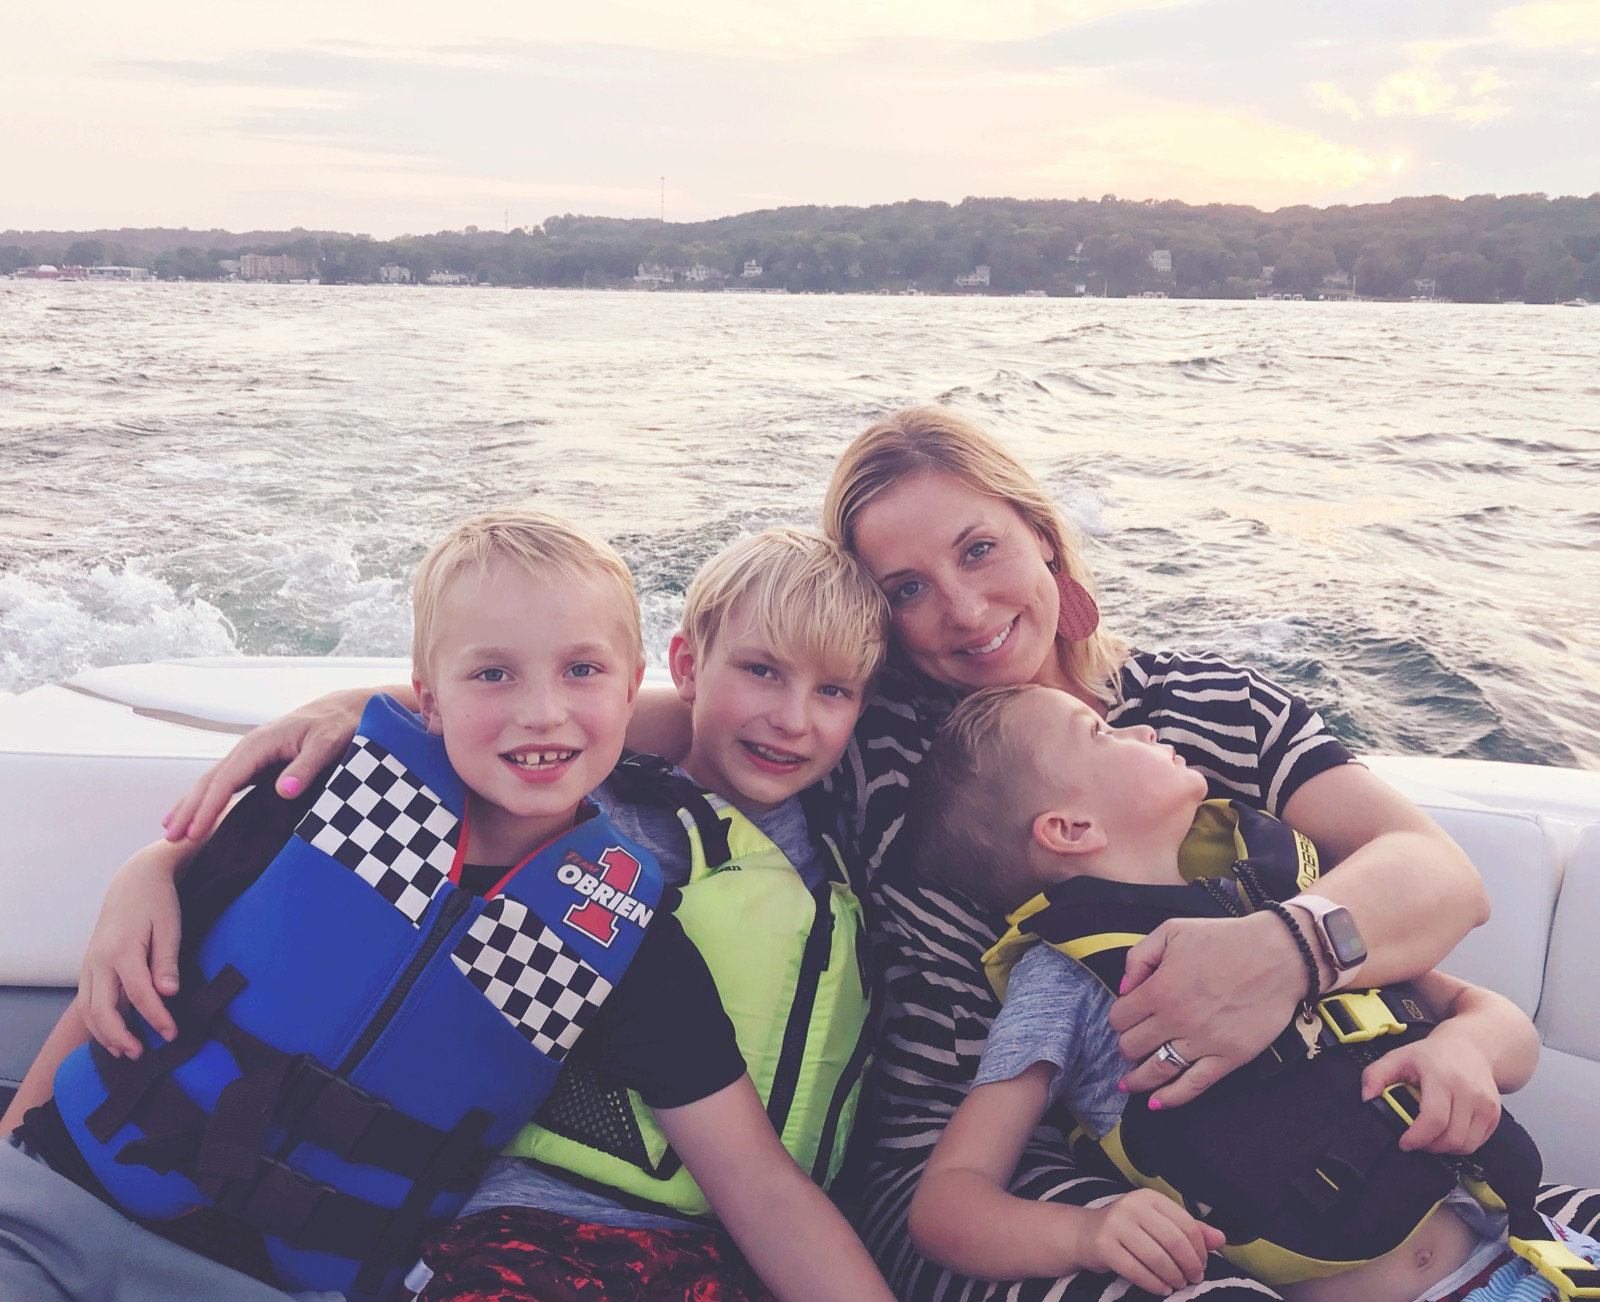 Me, Blake, Chase + Bodey. We always feel close to Ethan on the water.